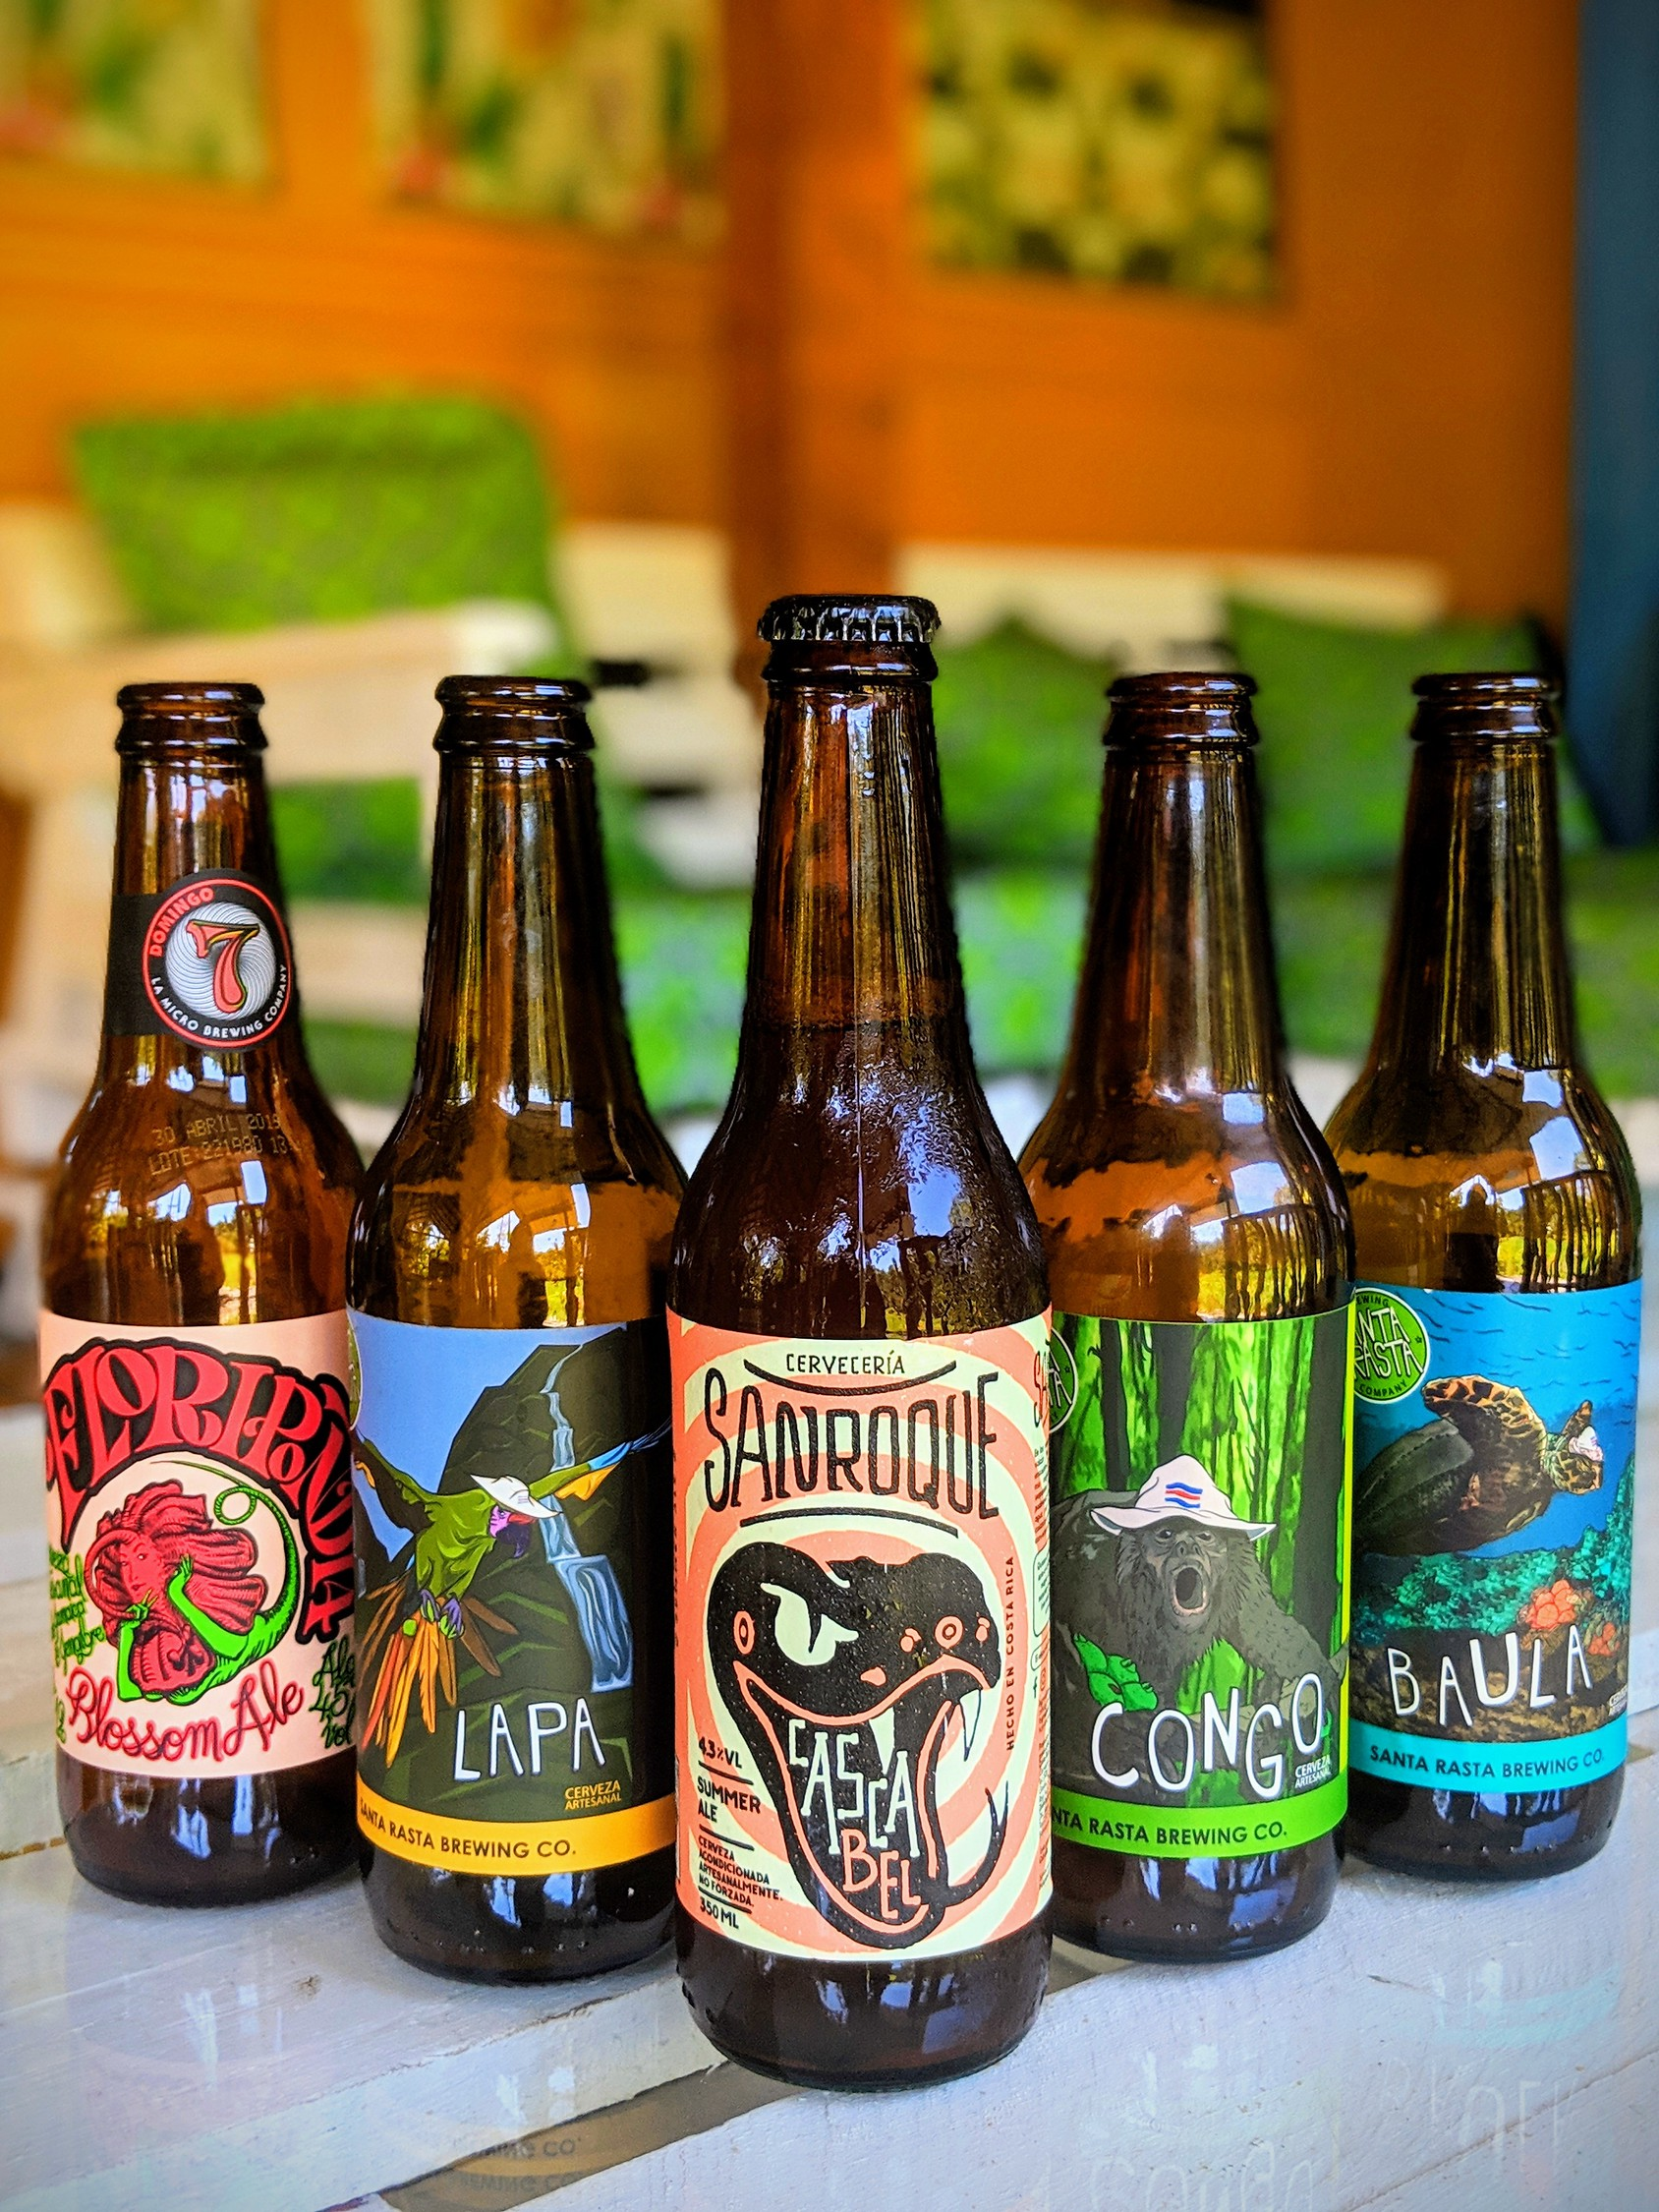 Costa Rican craft beer in Puerto Viejo